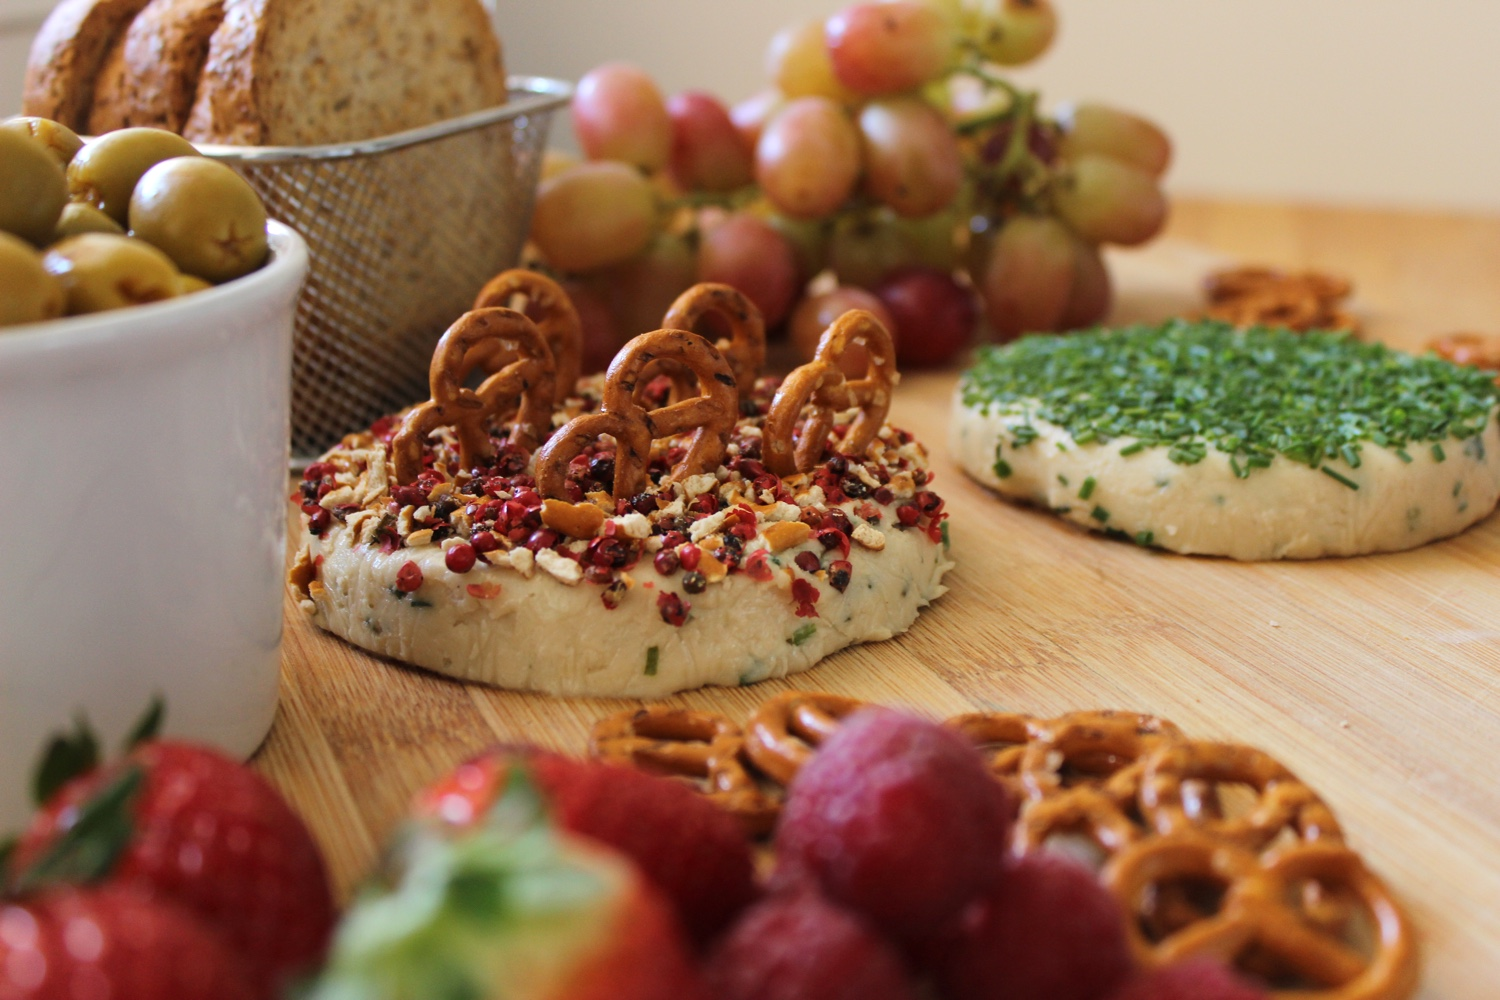 Creamy Cashew and Chive Cheese for a Festive Vegan Cheese Platter - Brownble